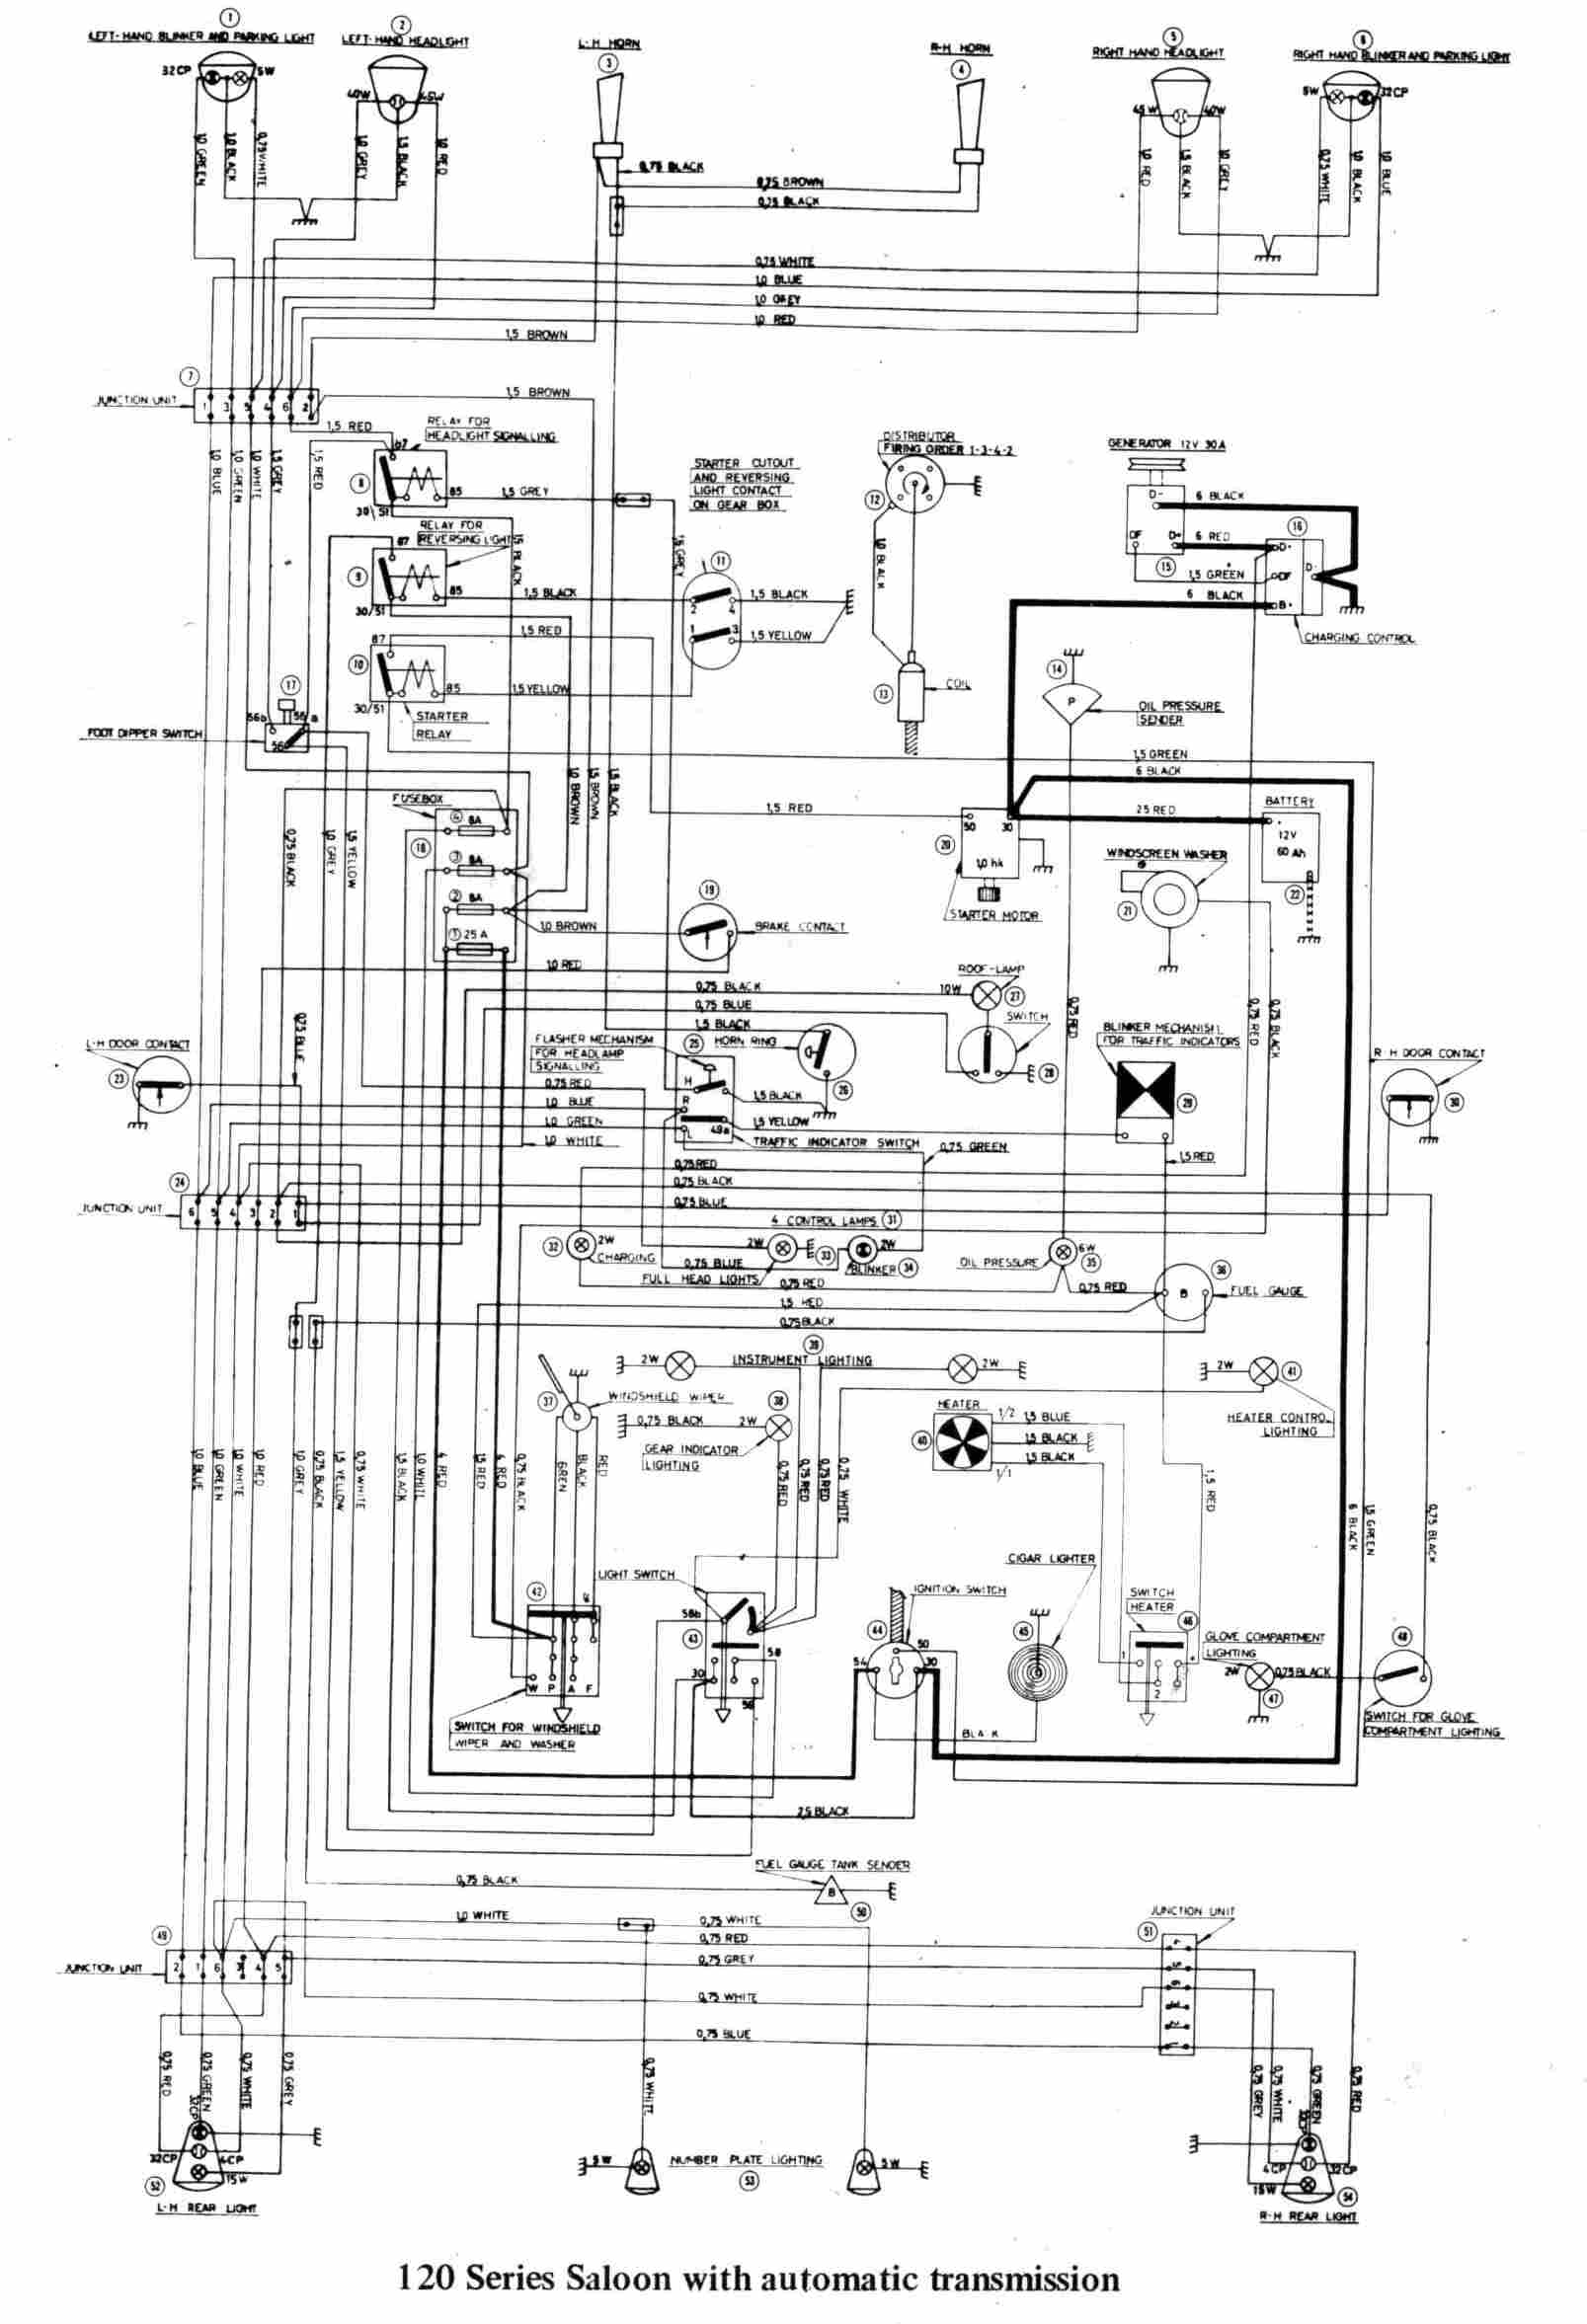 volvo 122s - wiring diagrams